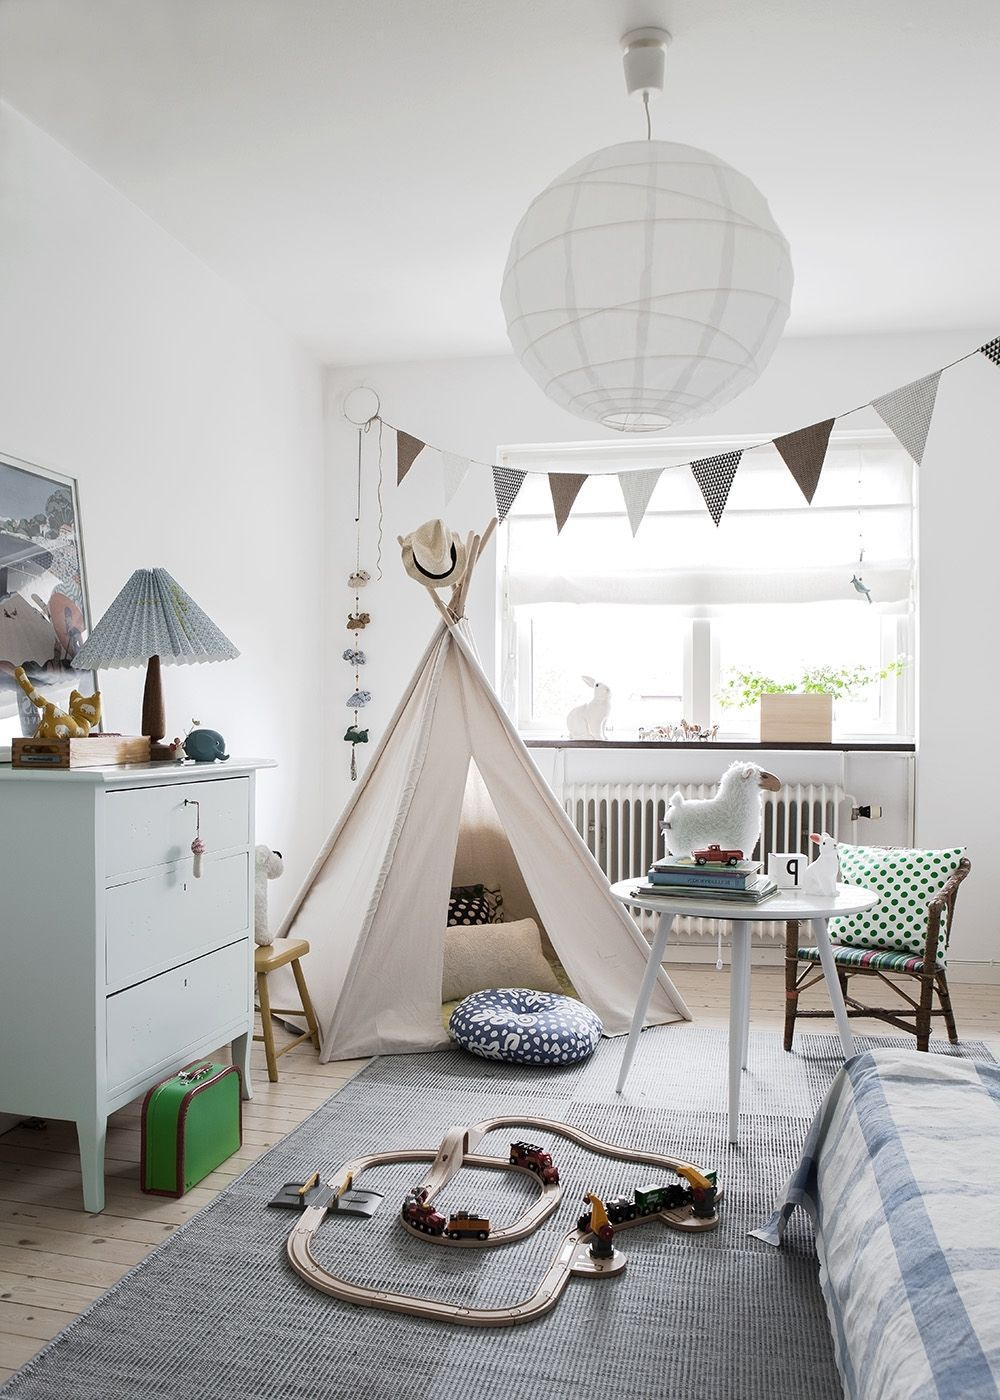 Kids Room Decordots Scandinavian Style Intended For Brilliant In Addition To Beautiful Nor Scandinavian Kids Rooms Scandinavian Bedroom Decor Boys Room Decor